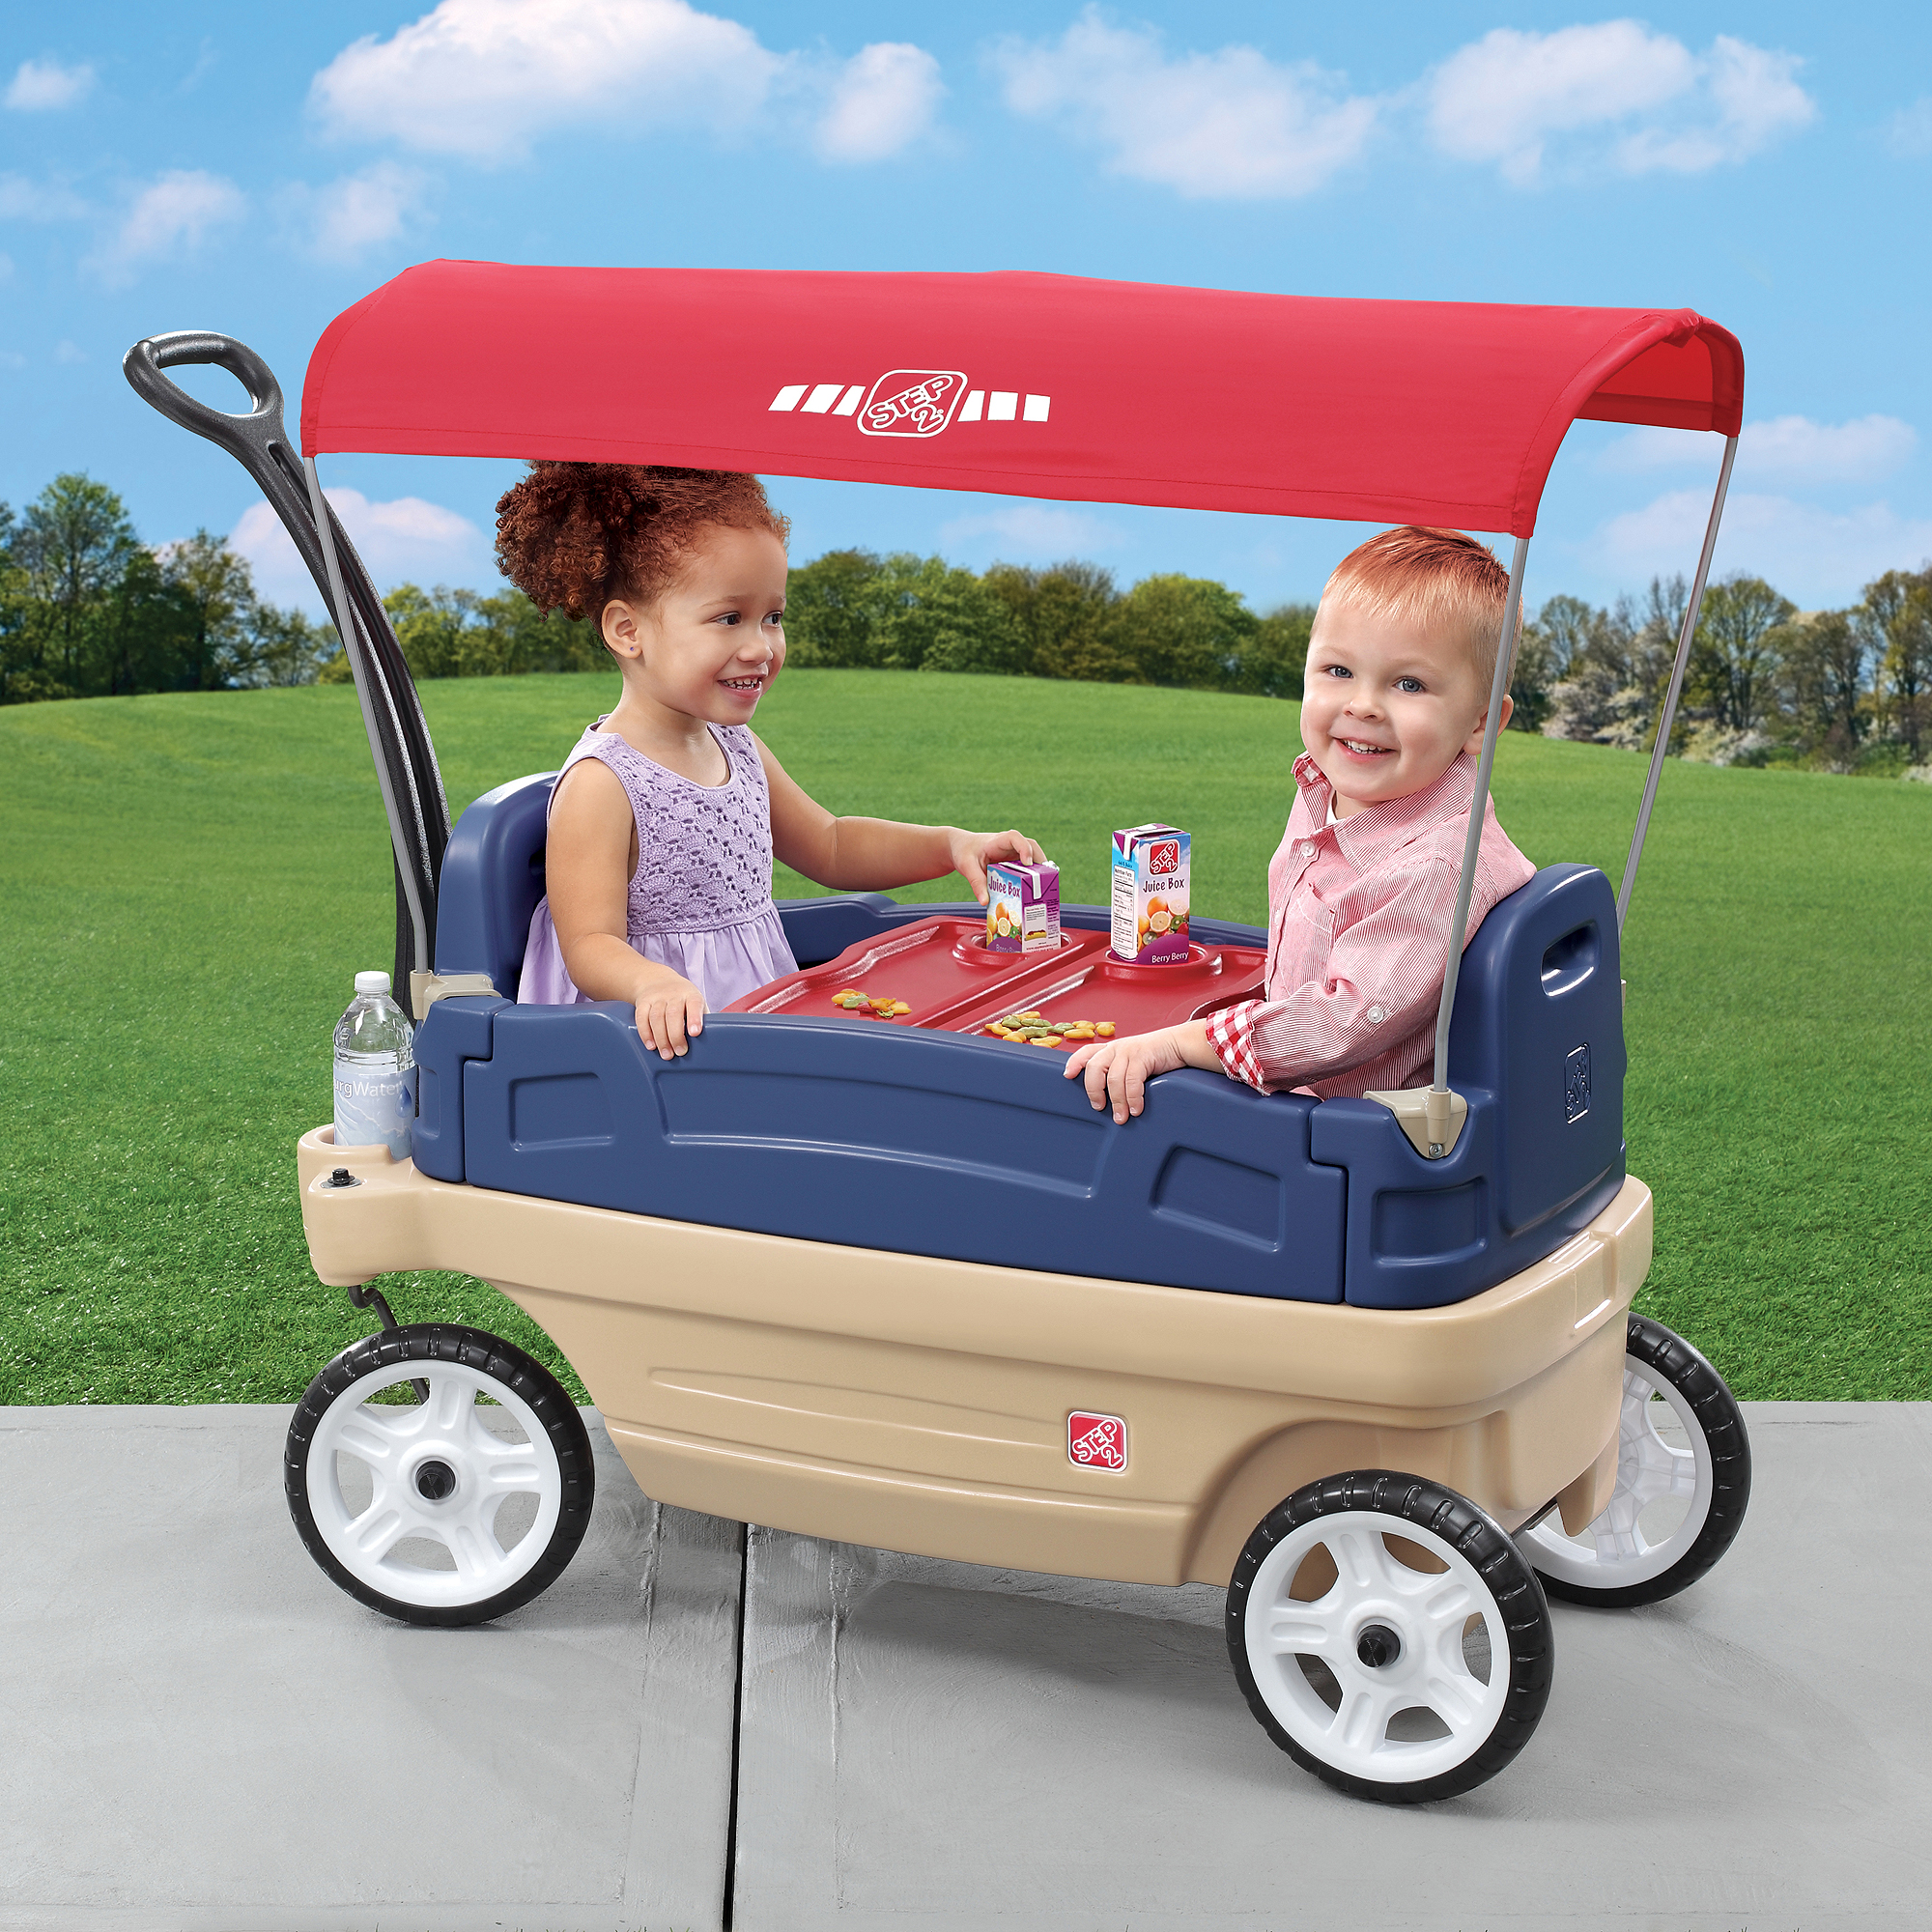 Step2 Whisper Ride Touring Wagon, Blue/Red with Removable Canopy and Drink Holder